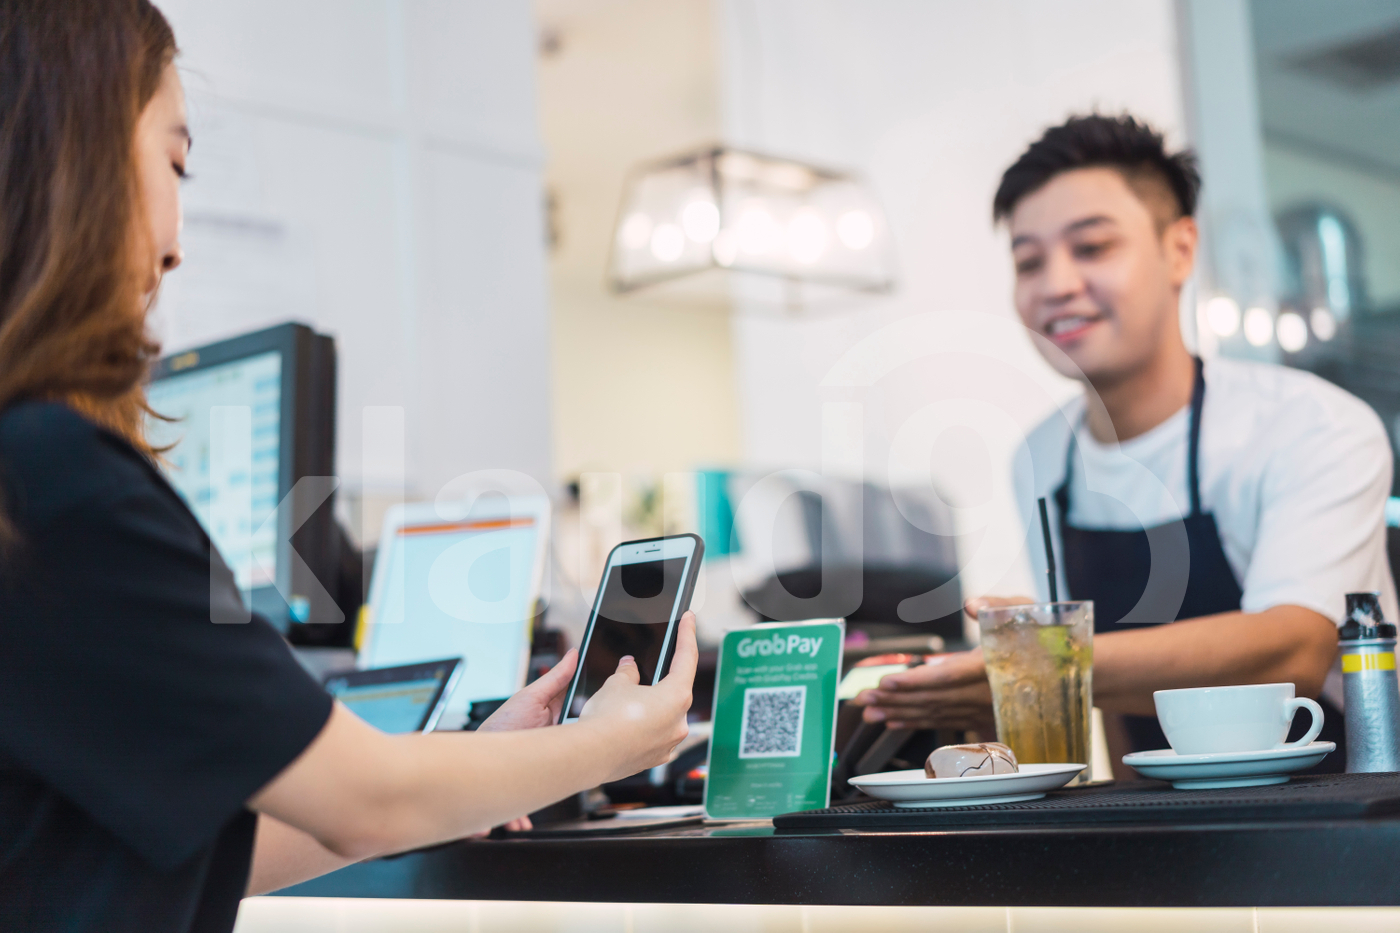 Young Asian woman making payment with mobile at coffee shop